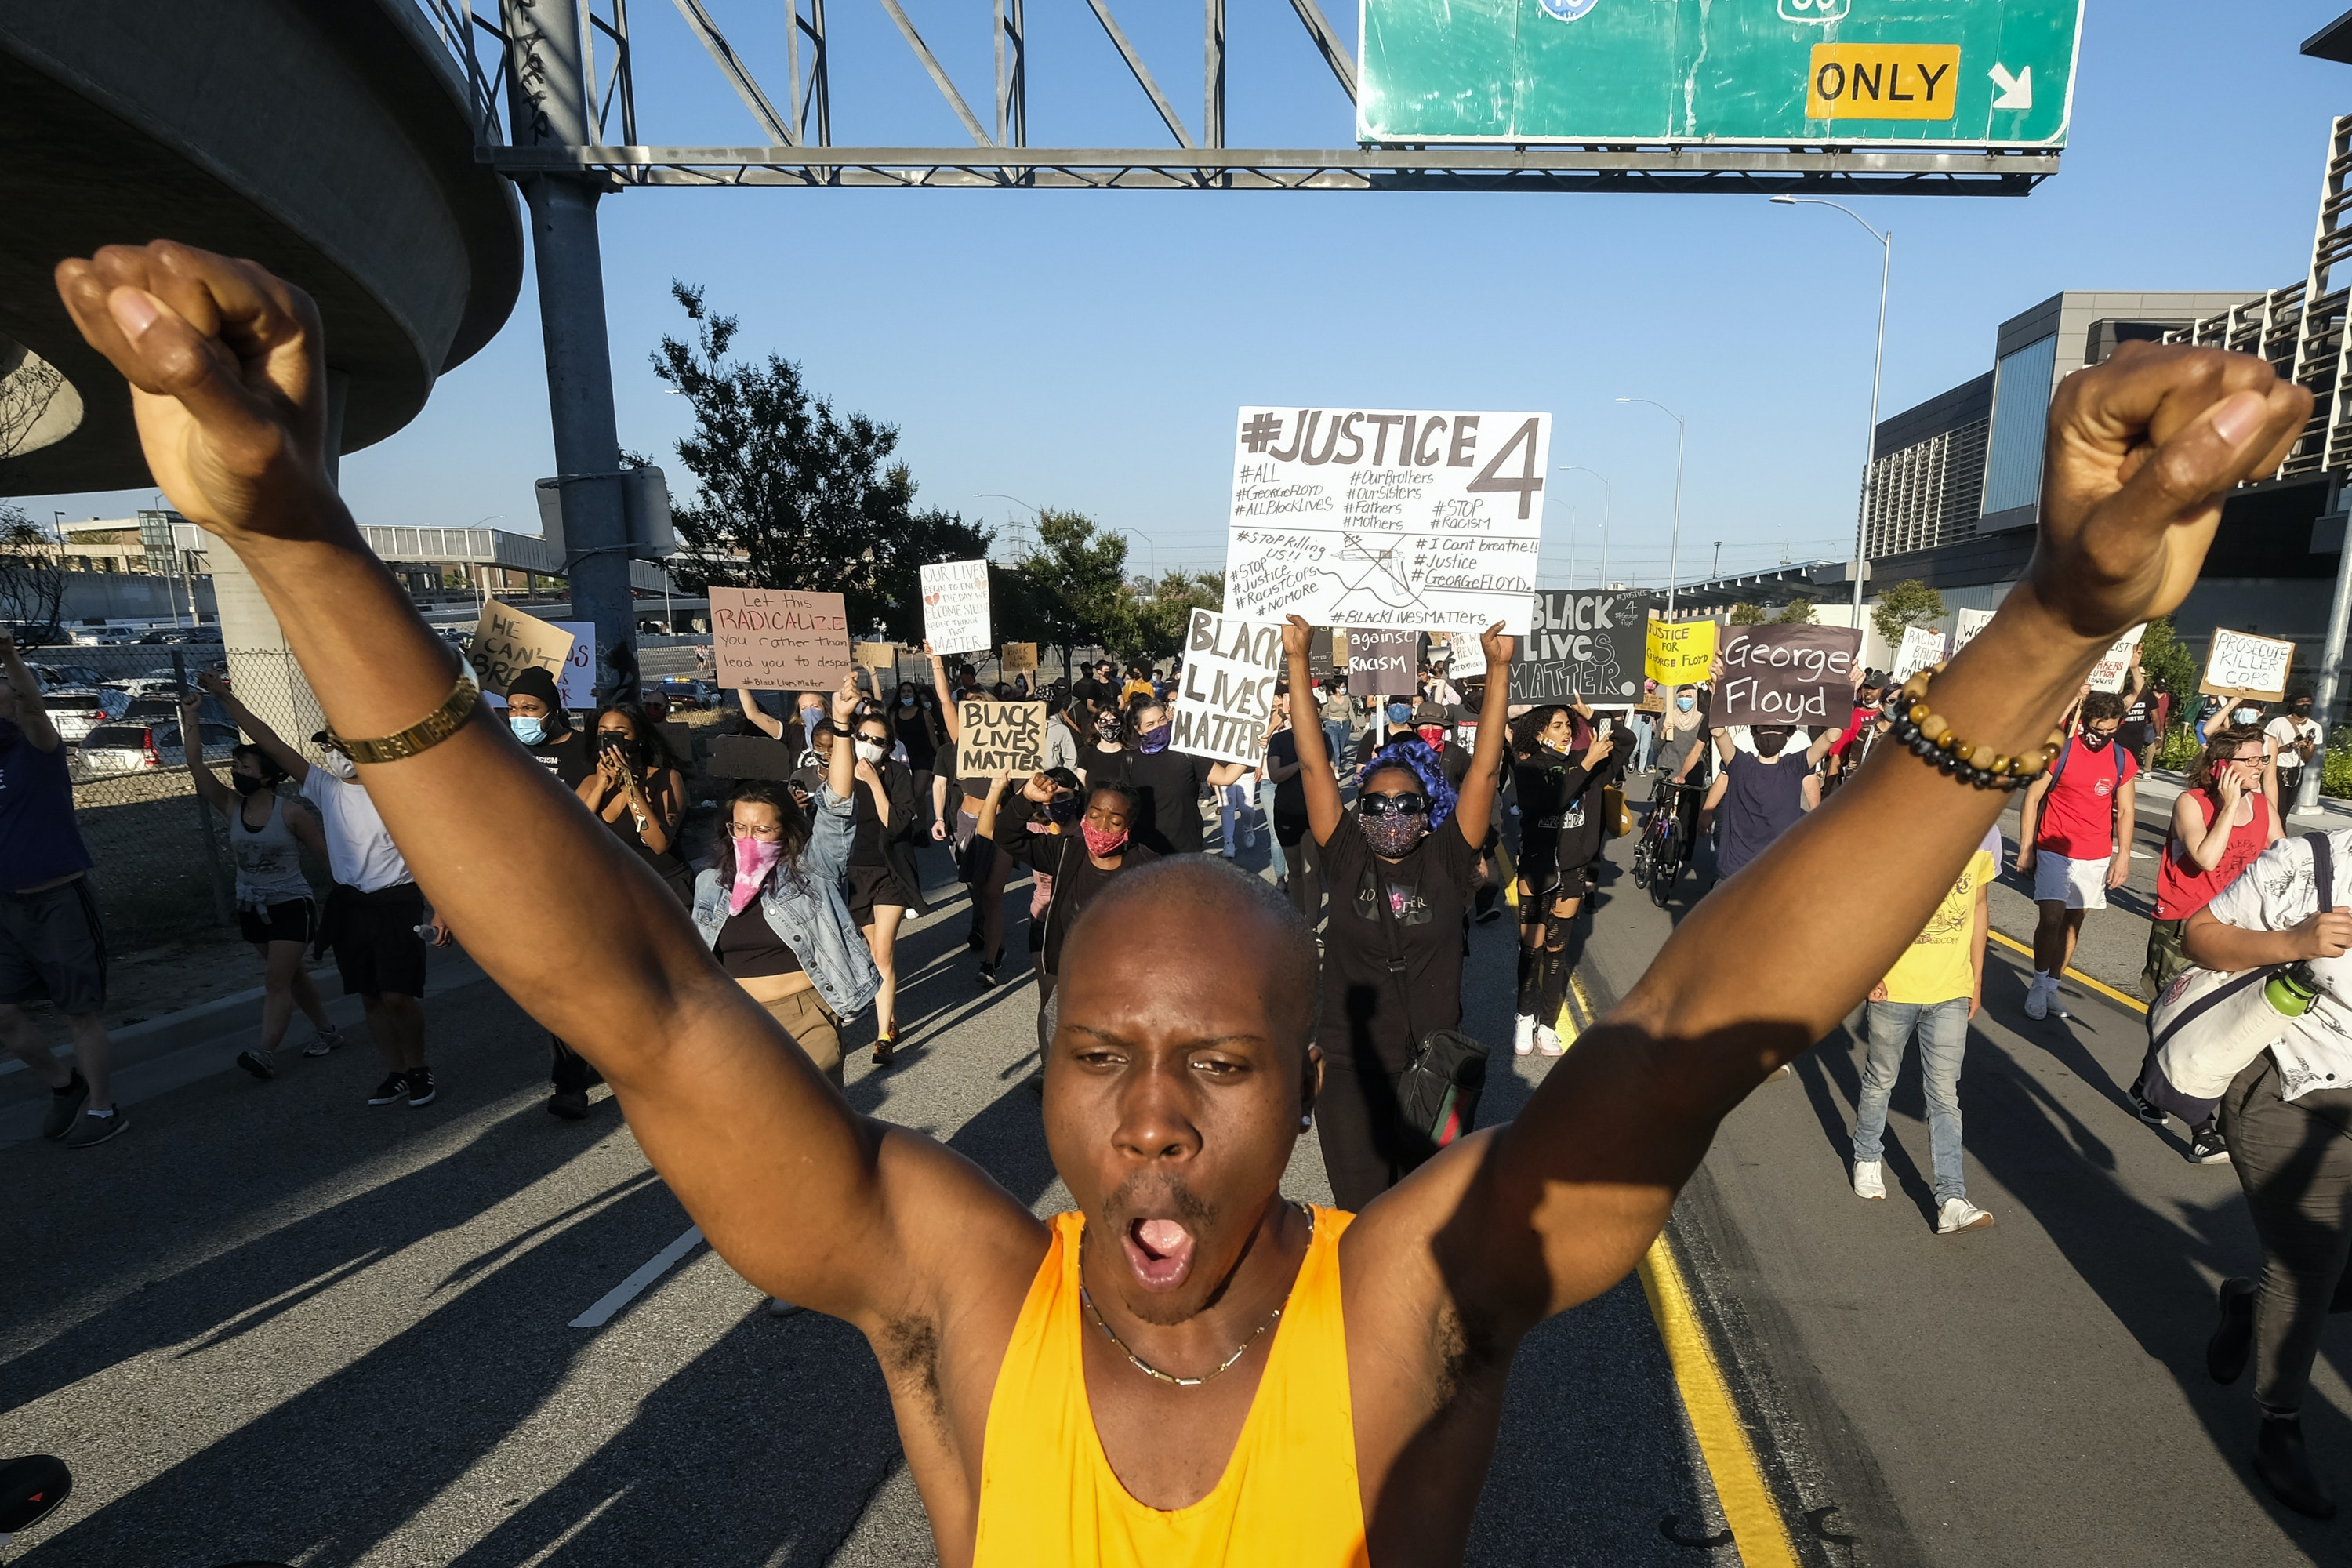 Demonstrators marched in Los Angeles following the police killing of George Floyd in Minneapolis. AP Photo/Ringo H.W. Chiu